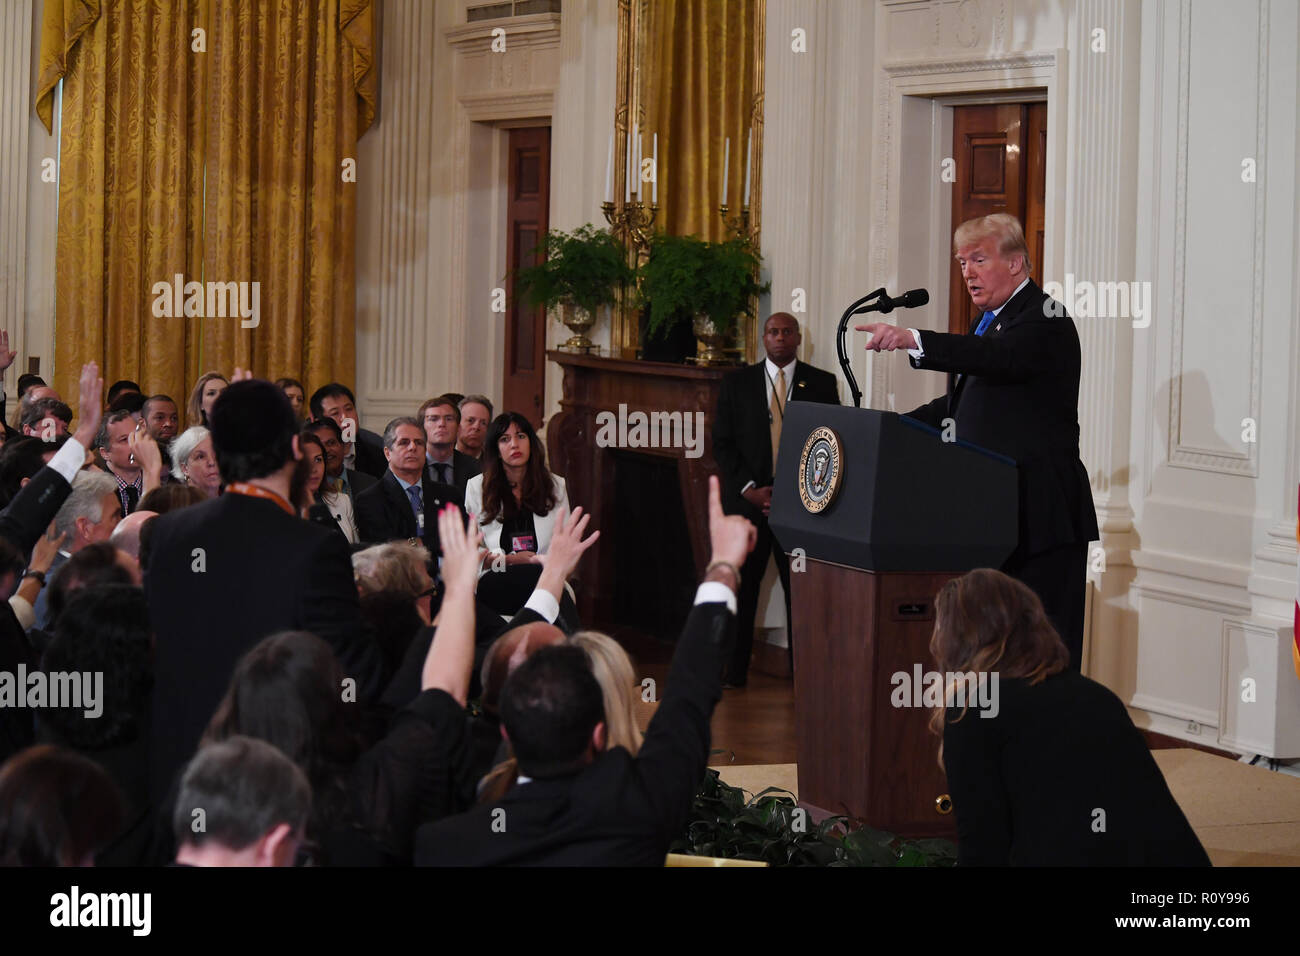 Washington, District of Columbia, USA. 7th Nov, 2018. 11/7/18- The White House-Washington DC.President Donald Trump Holds a press conference in The East Room of The White House following the mid term election results. photos by: - ImageCatcher News Credit: Christy Bowe/Globe Photos/ZUMA Wire/Alamy Live News Stock Photo